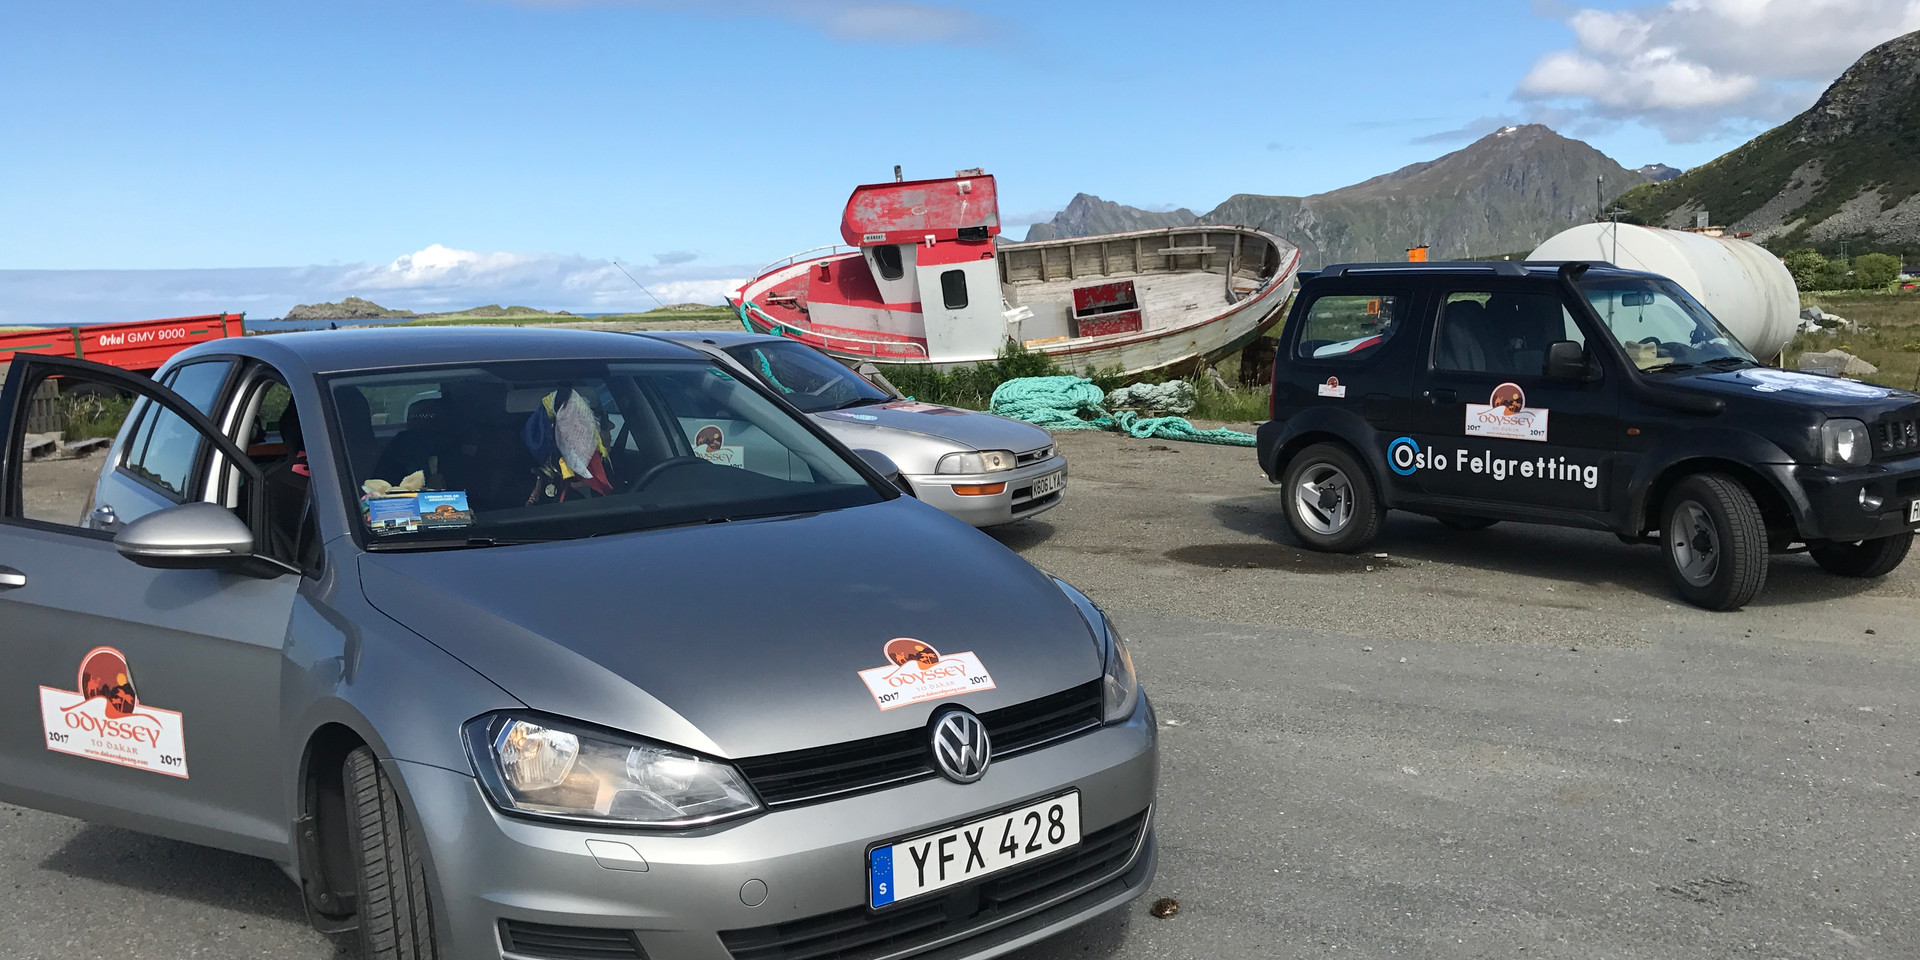 Rally in a Rental, Norway